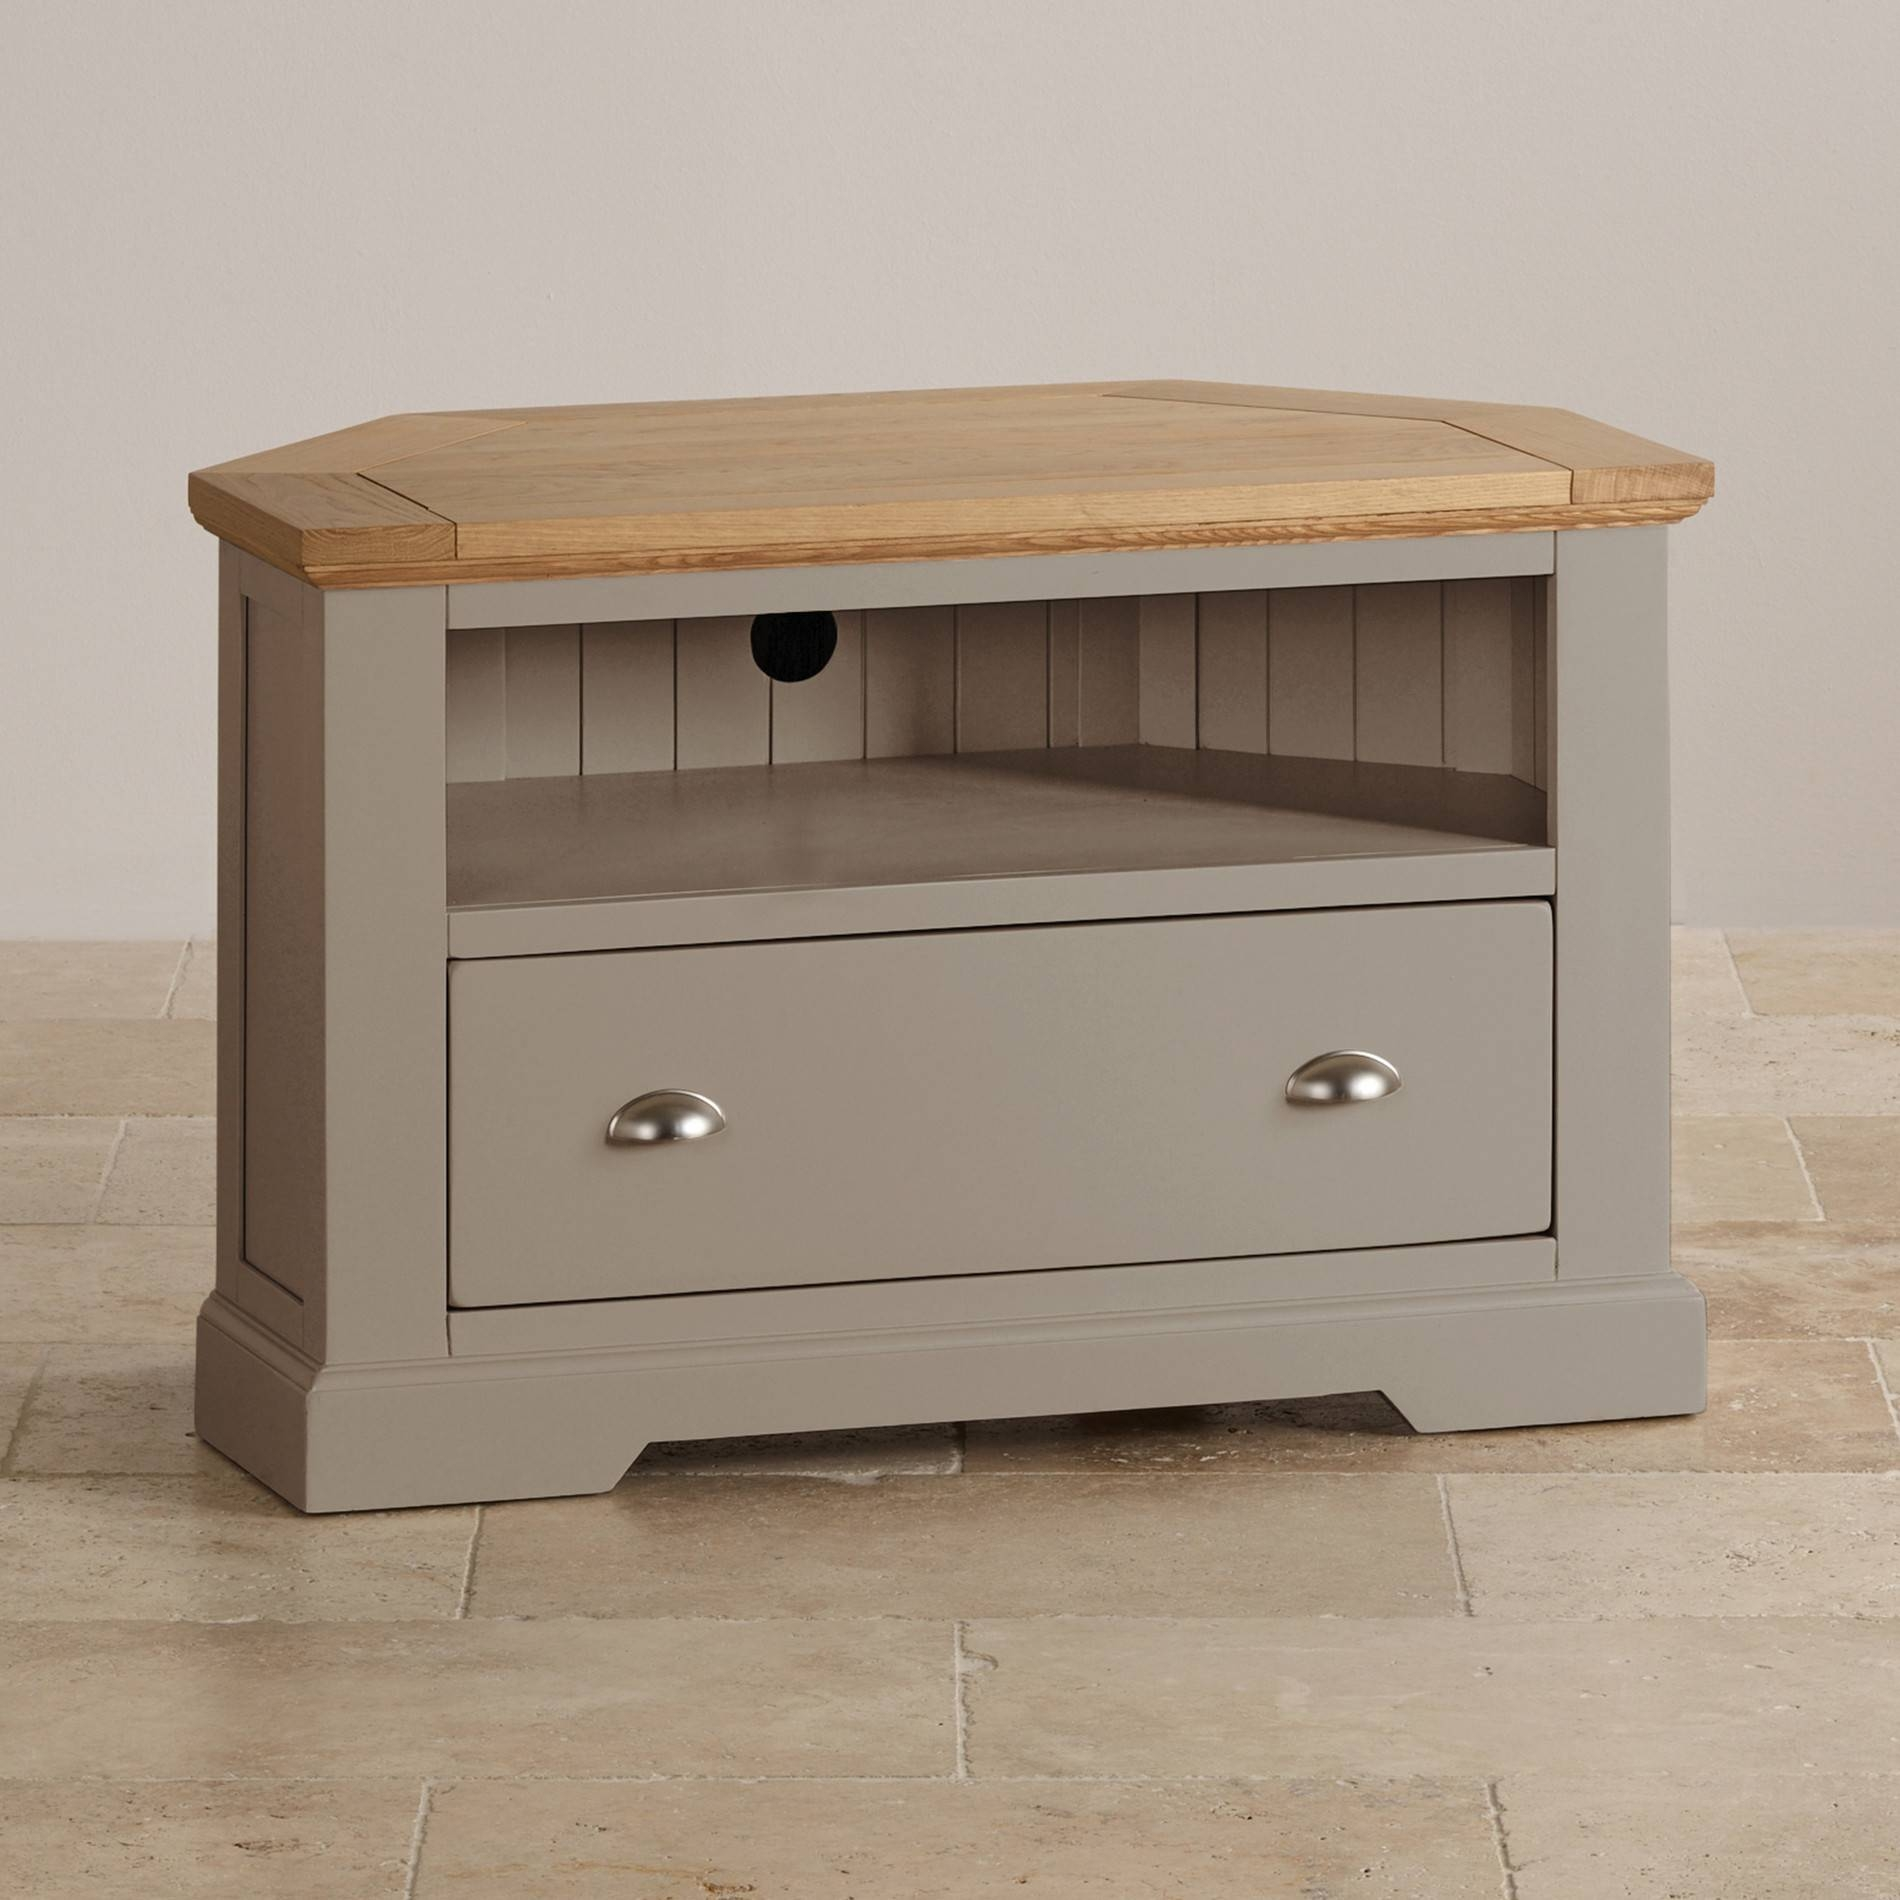 St Ives Corner Tv Unit In Grey Painted Acacia With Oak Top for Wood Corner Tv Cabinets (Image 14 of 15)